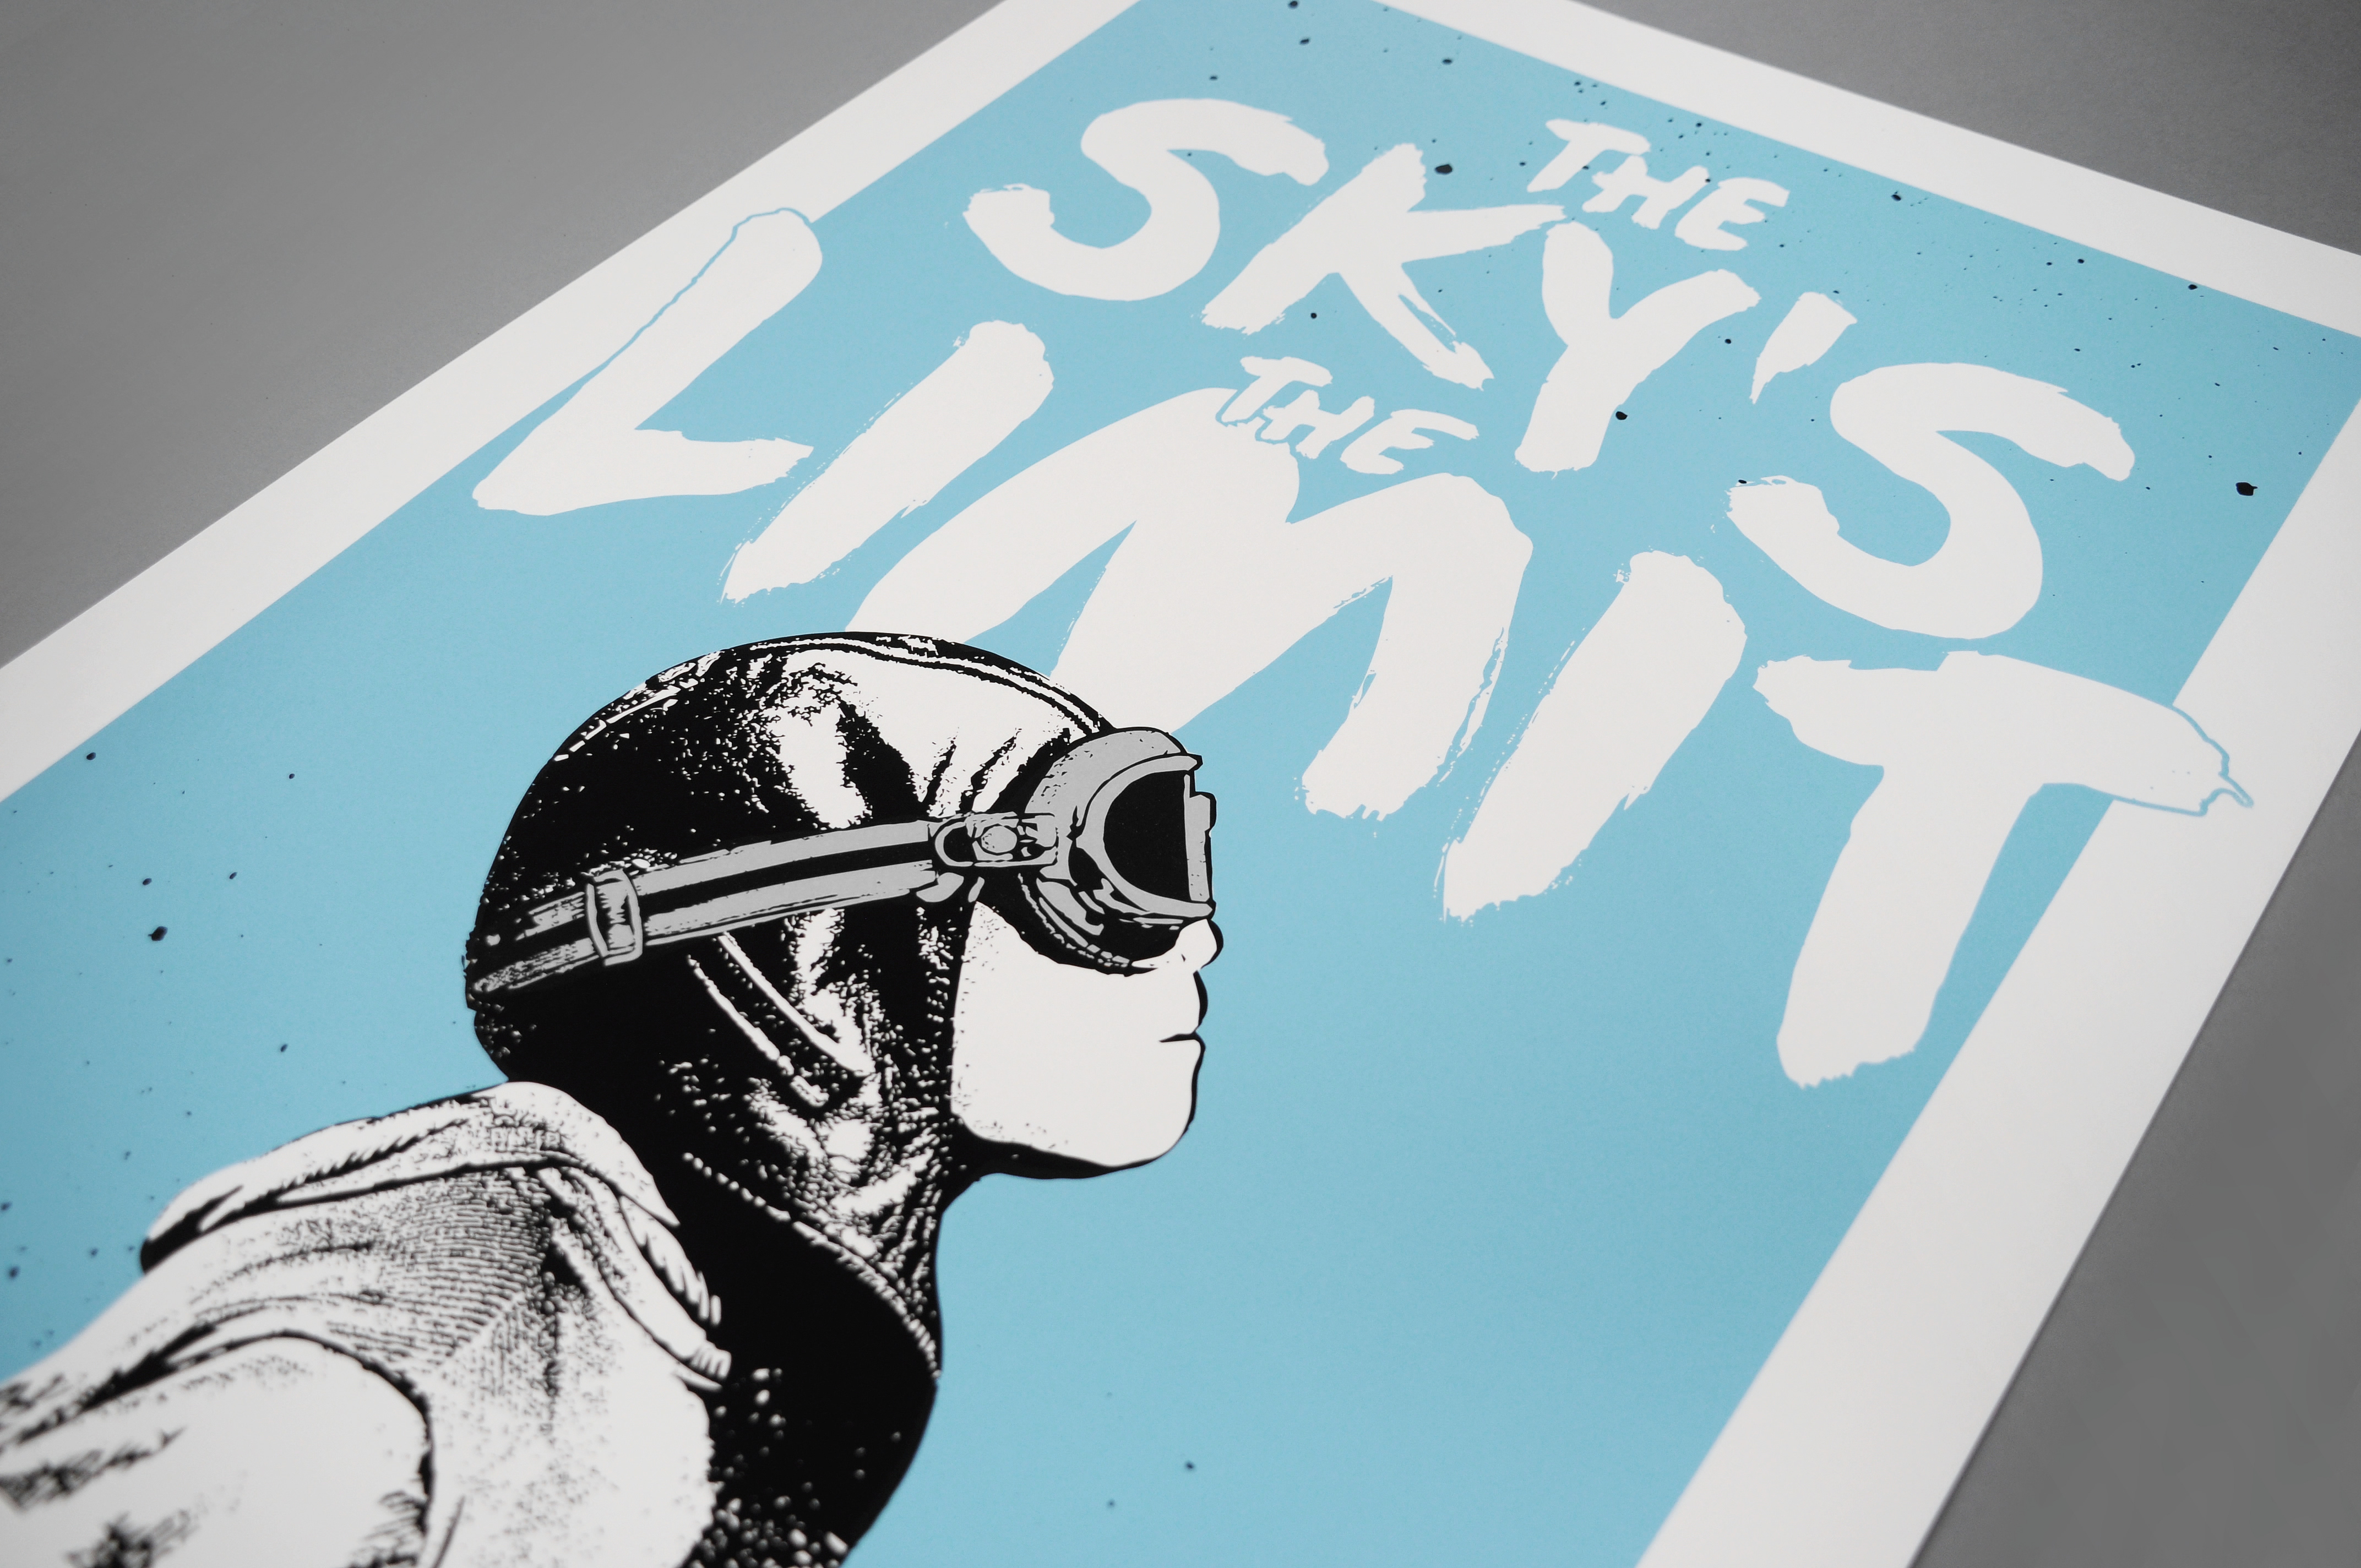 nme-the-sky-the-limit-poster-1